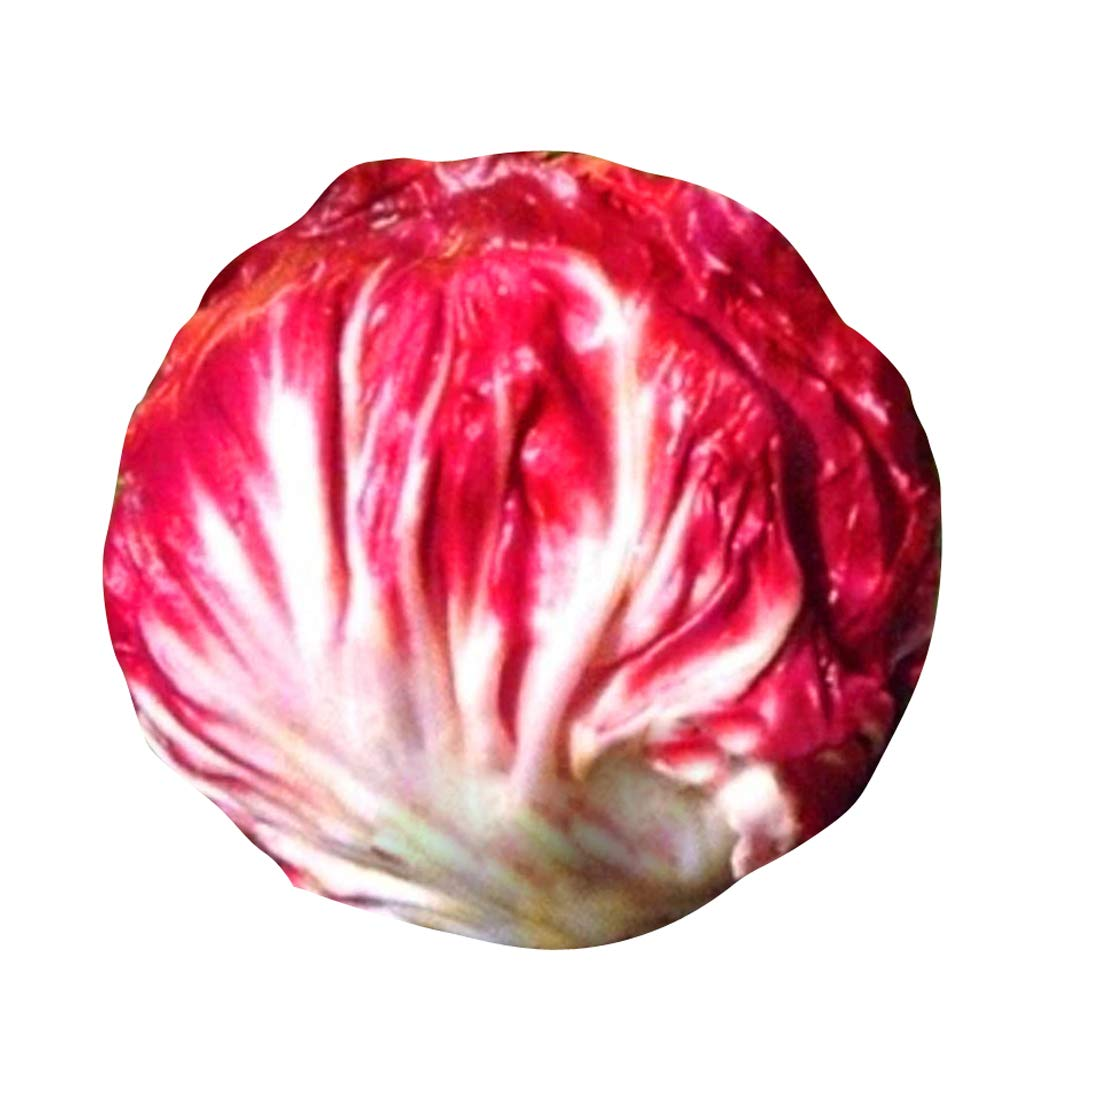 Futaba Red Cabbage Vegetable Seeds 100pcs Amazon In Home Improvement